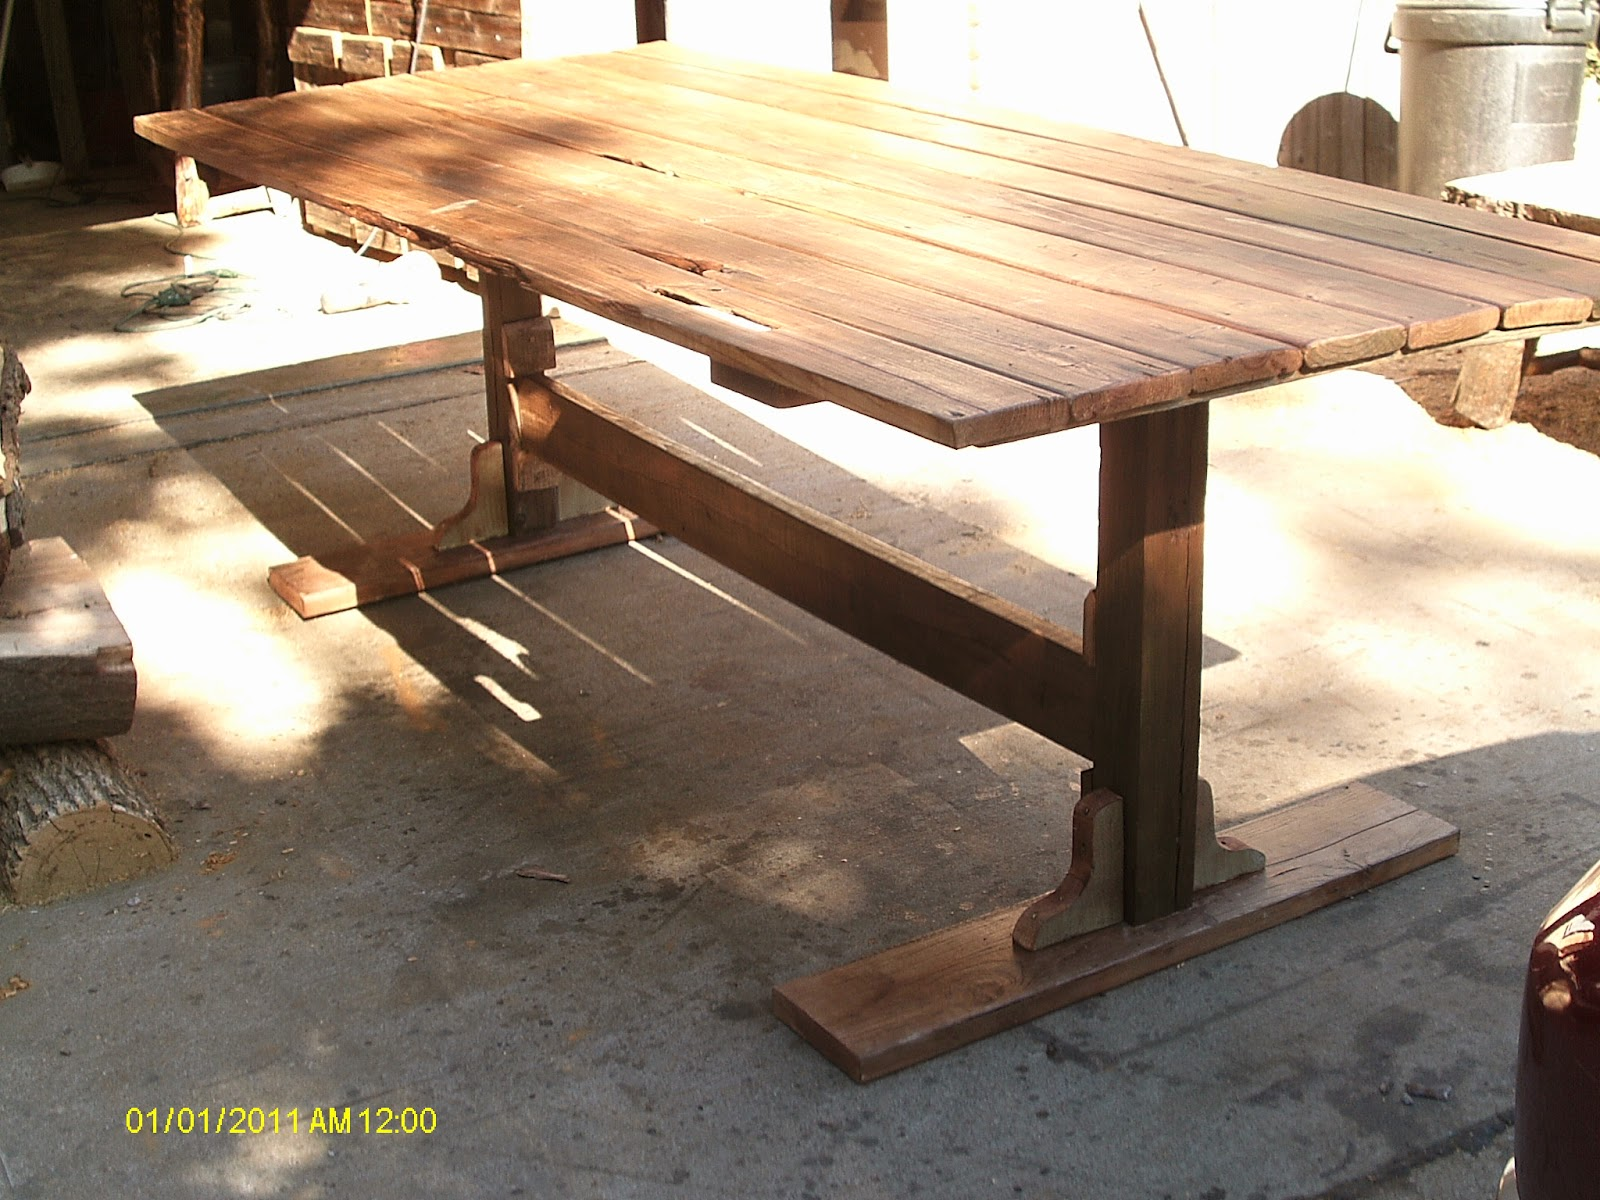 Handmade Rustic & Log Furniture Rustic Reclaime Barnwood Dining Table